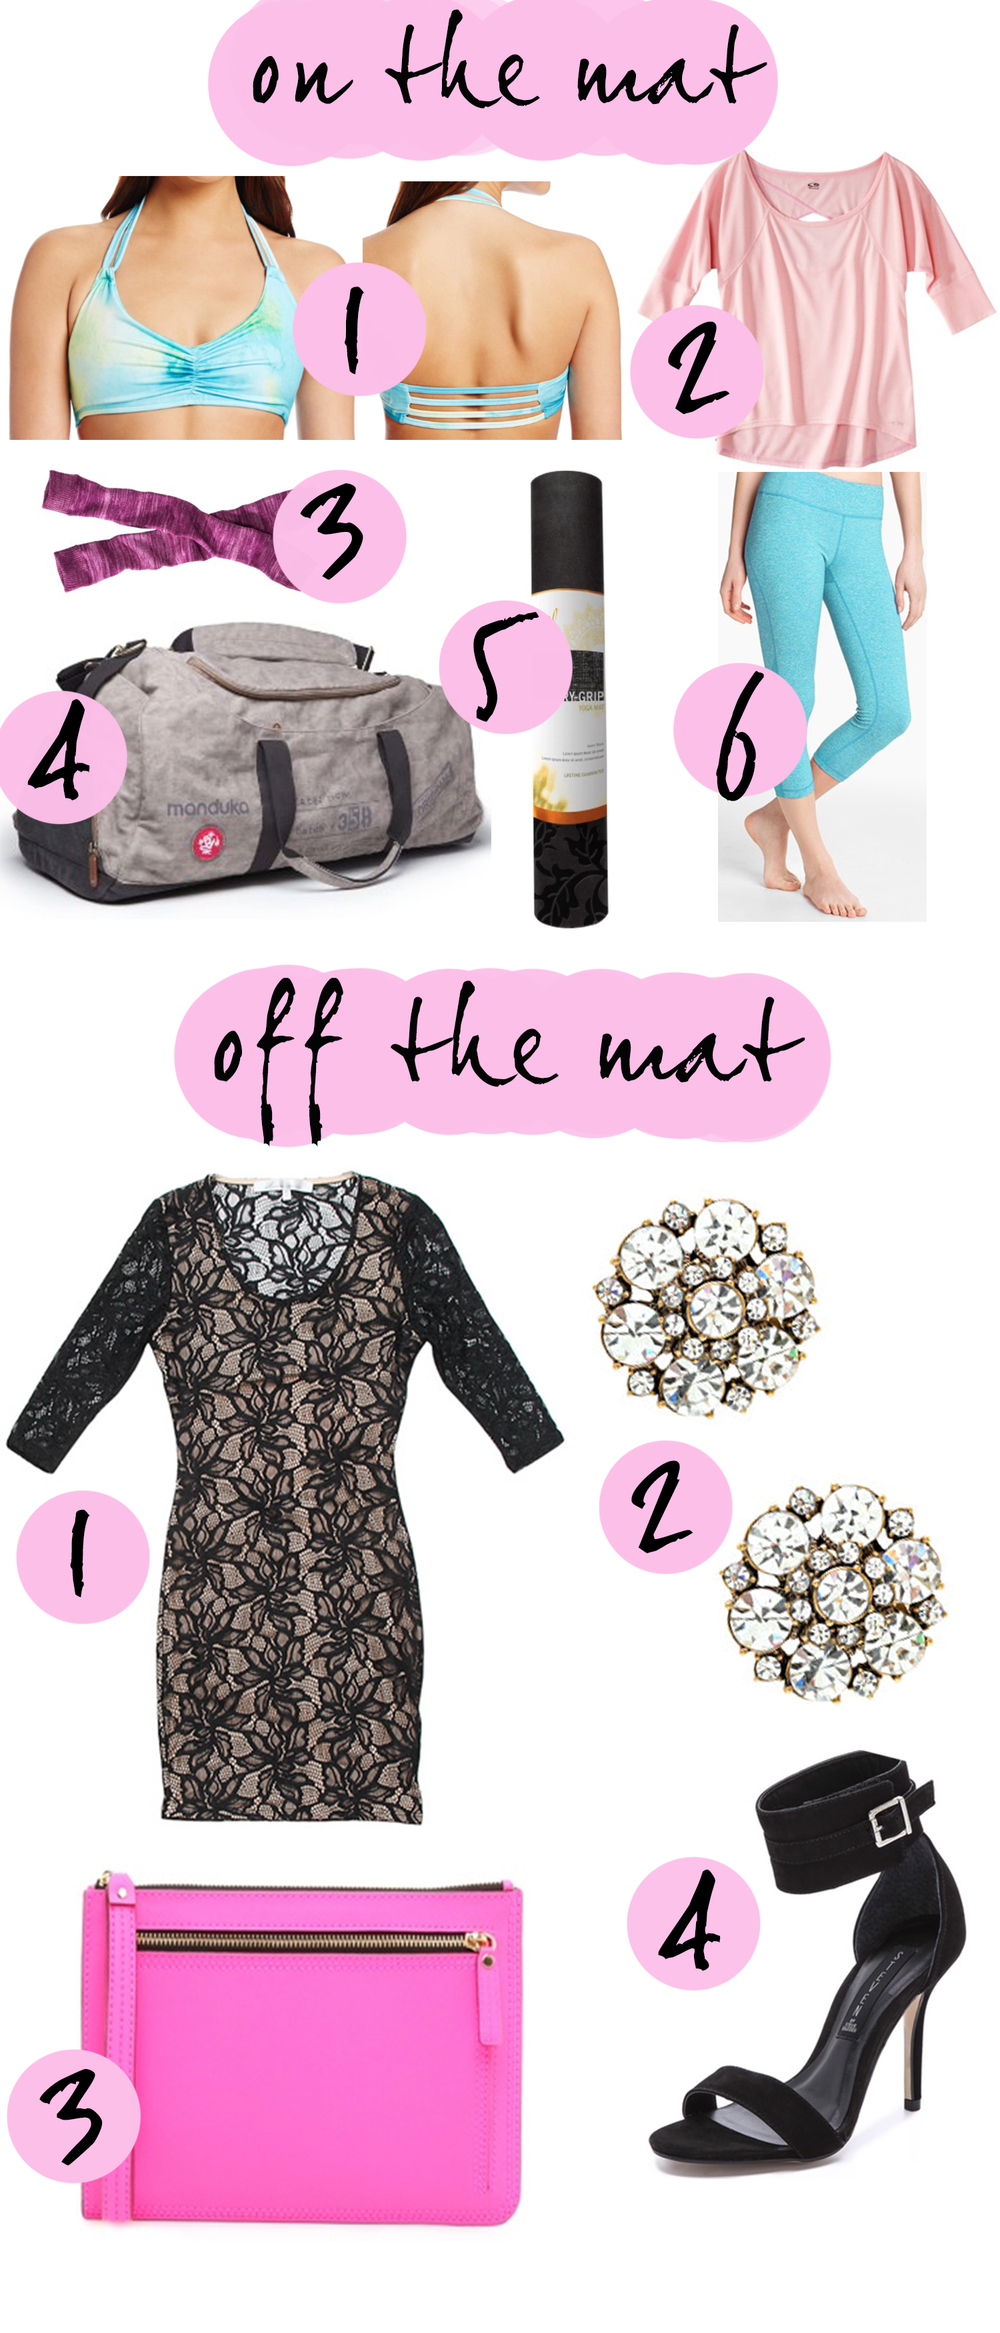 Pin it! Clothes for your workout or a date night.